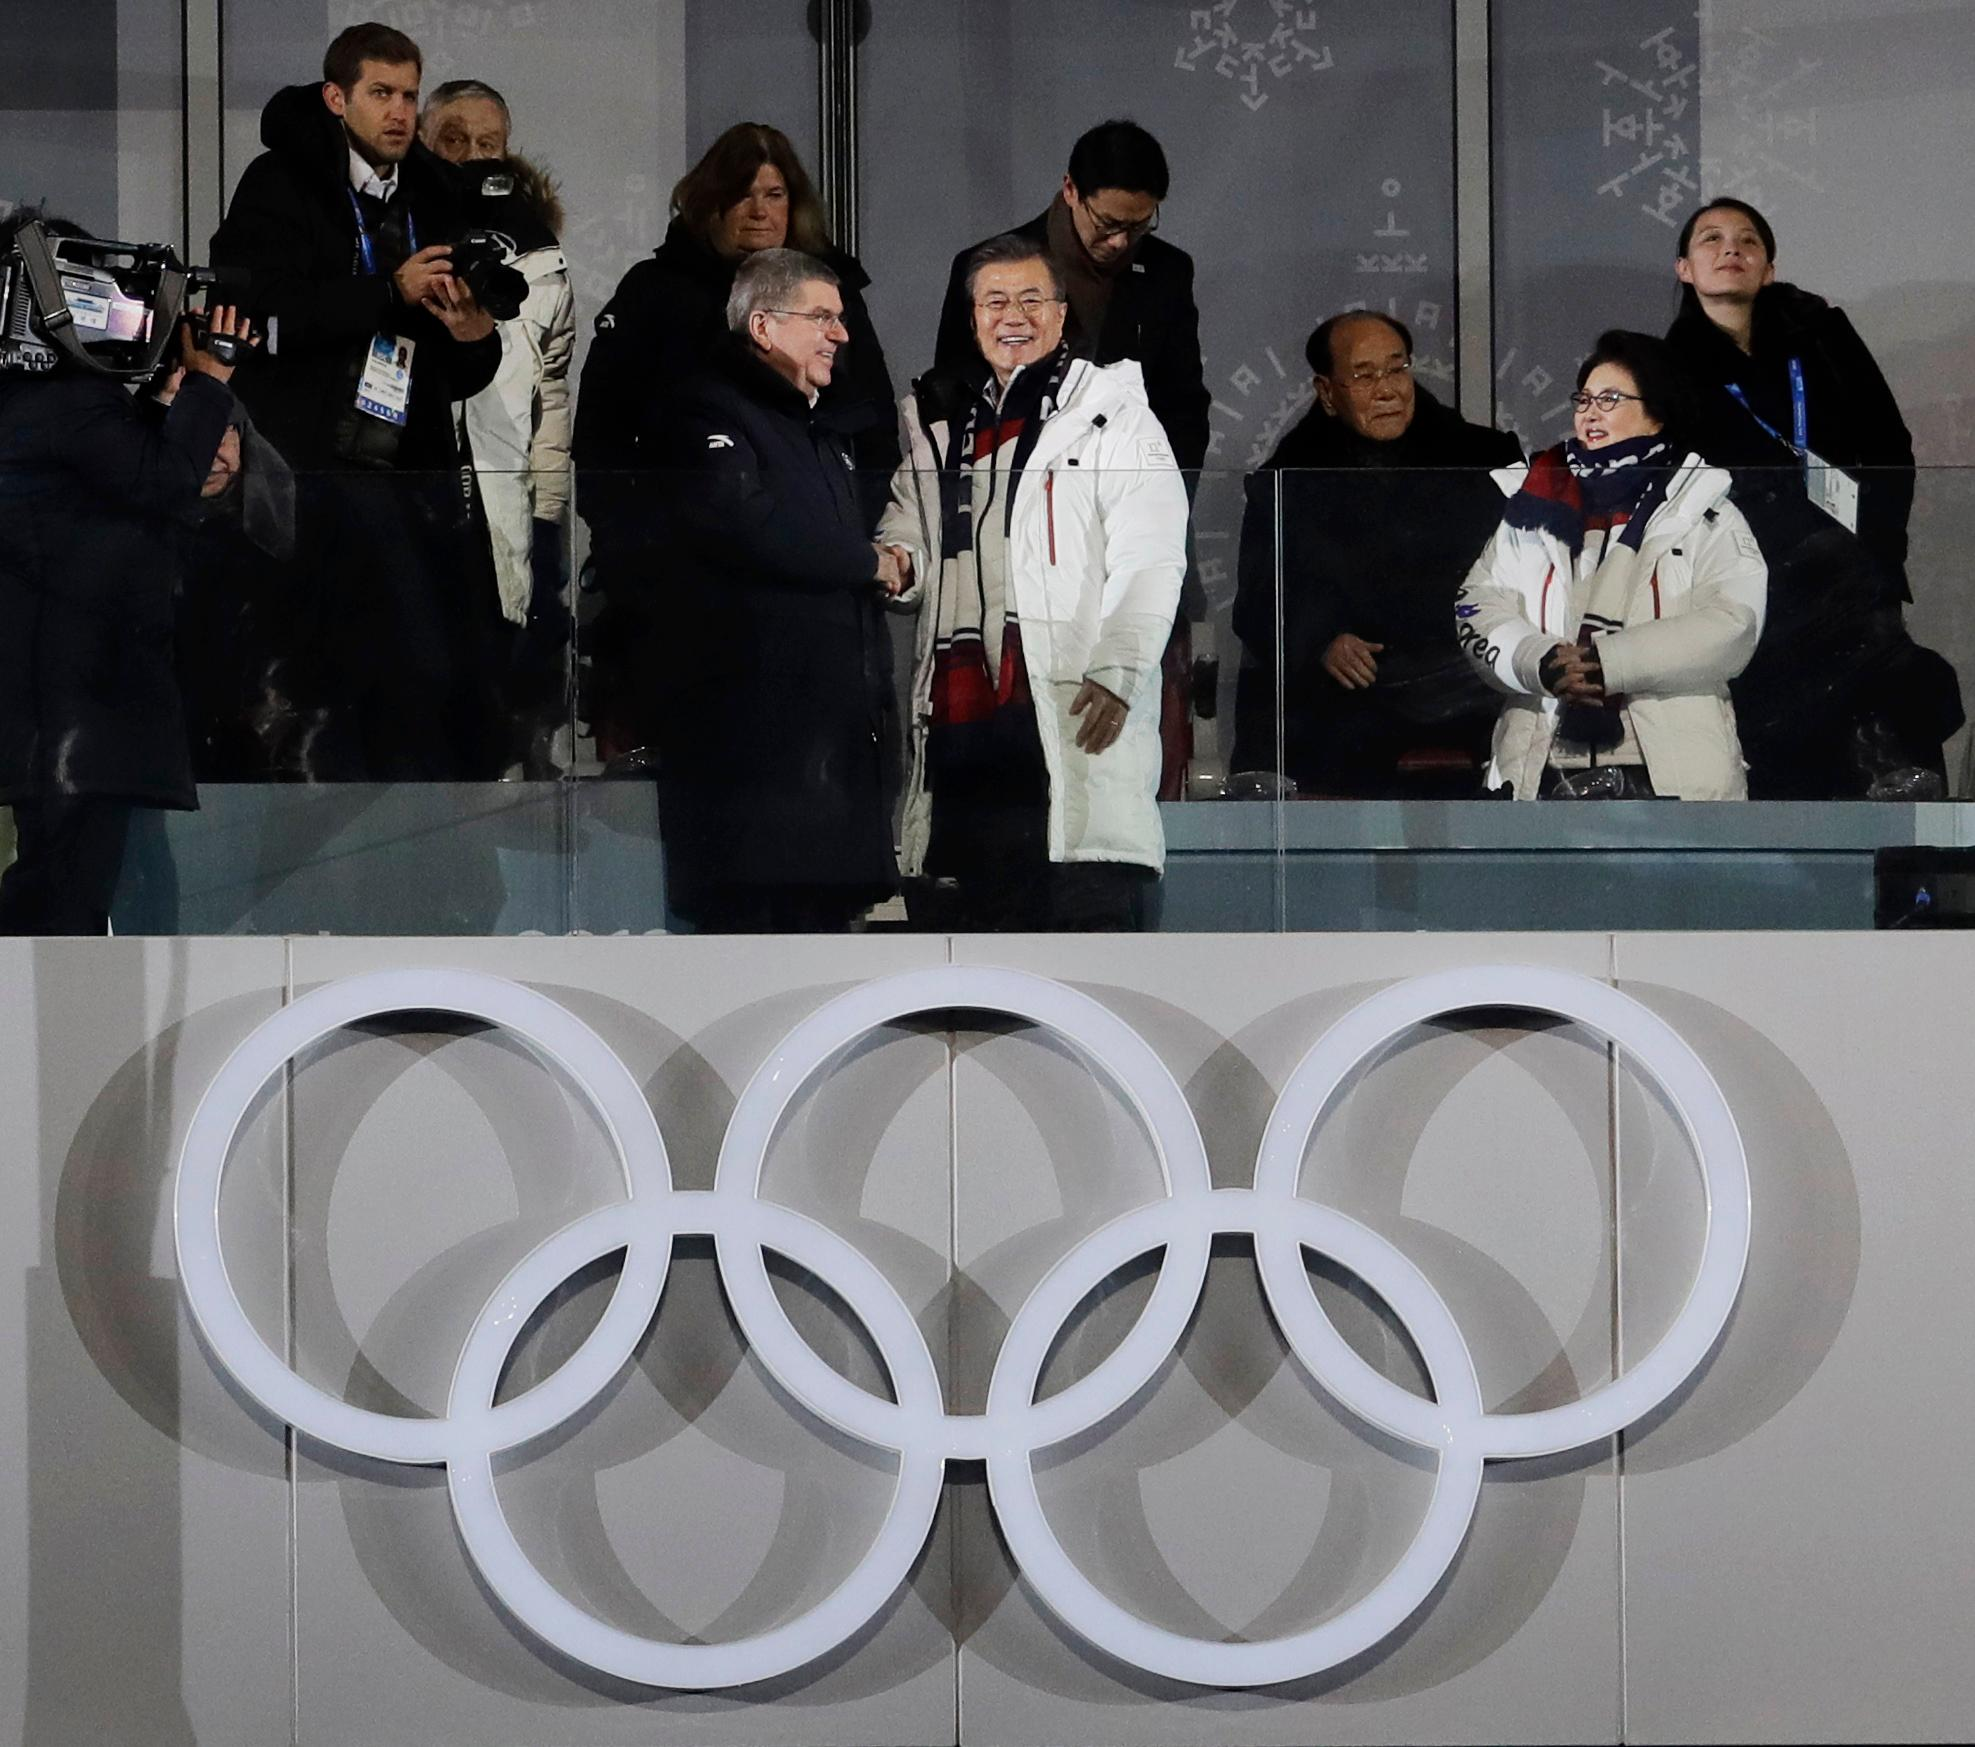 International Olympic Committee President Thomas Bach, left, shakes hands with South Korean President Moon Jae-in as his wife Kim Jung-sook stands second from right near Kim Yo Jong, far right, sister of North Korean leader Kim Jong Un, and Kim Yong Nam, North Korea's nominal head of state, third from right, during the opening ceremony of the 2018 Winter Olympics in Pyeongchang, South Korea, Friday, Feb. 9, 2018. (AP Photo/Petr David Josek)